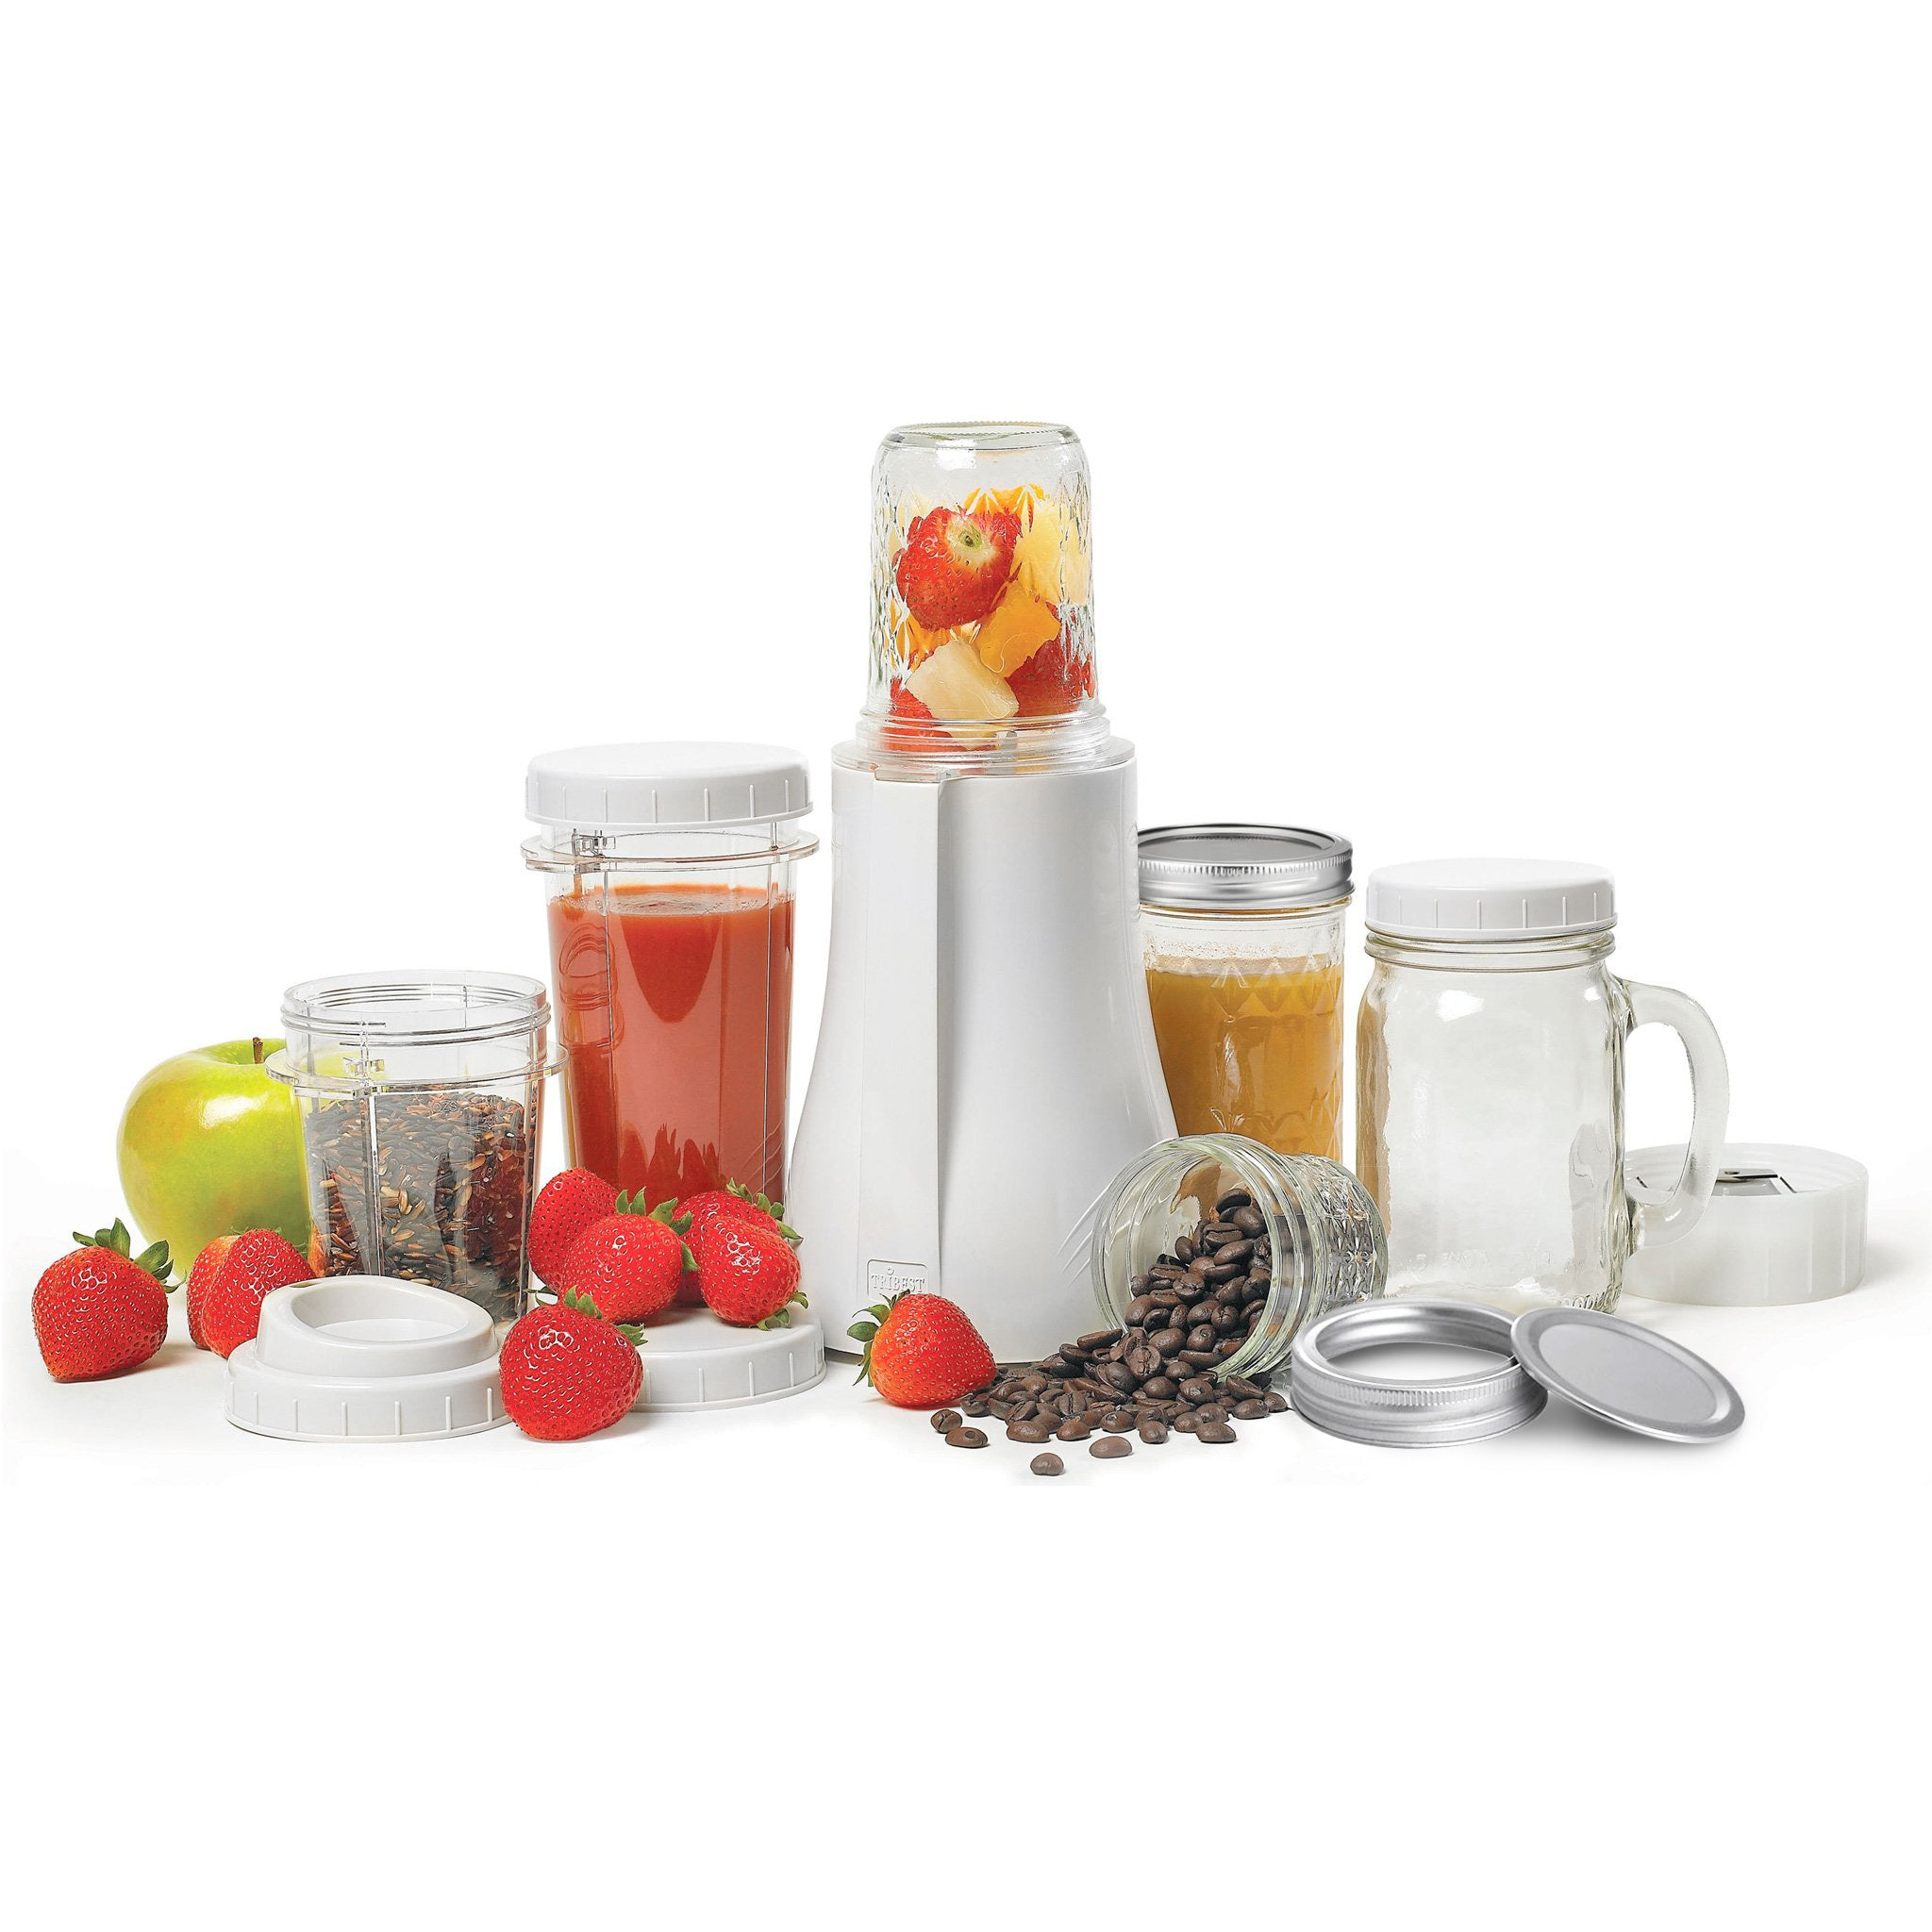 Personal Blender® Original Single-Serving Blender (16-Piece Mason Jar Set)